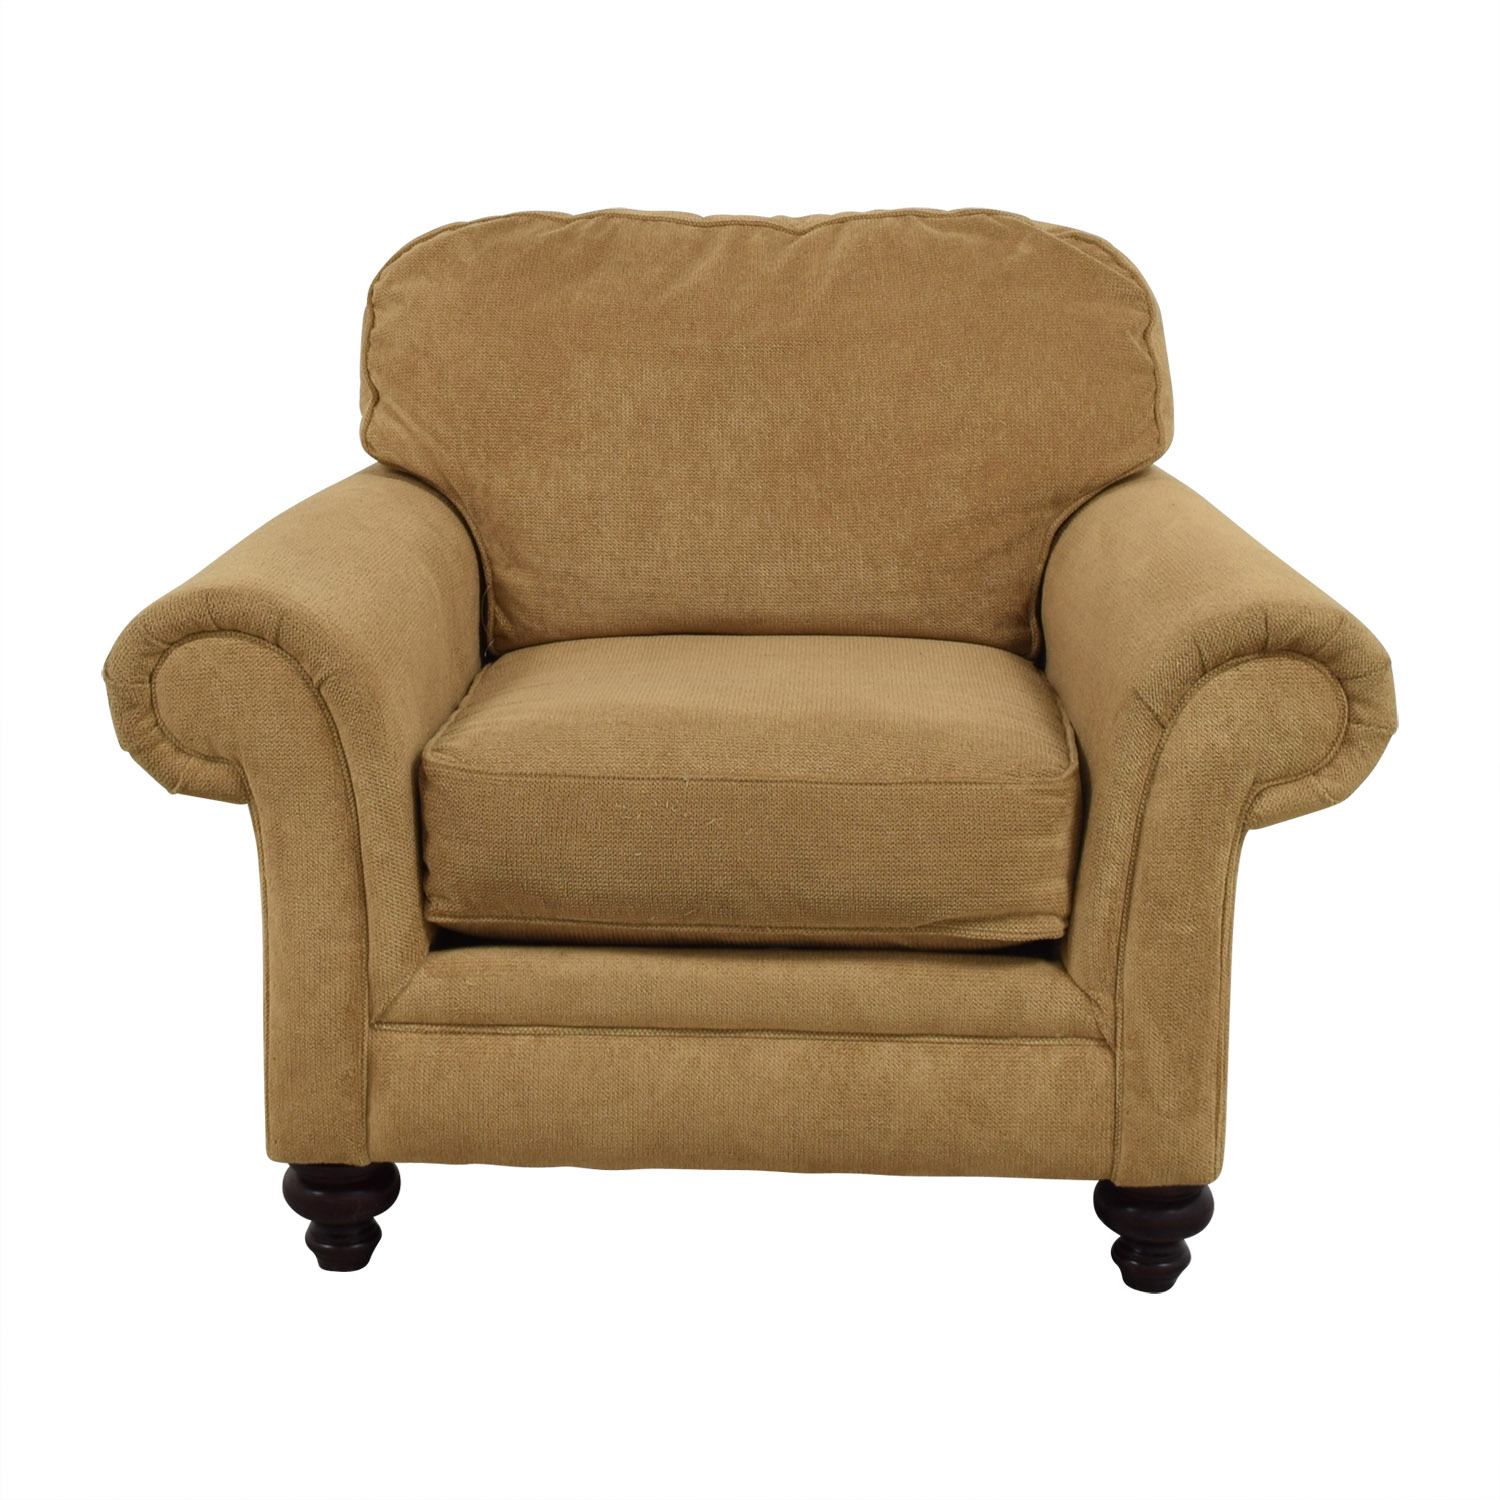 Genial Shop Broyhill Mustard Yellow Accent Chair With Curved Arms Broyhill Chairs  ...